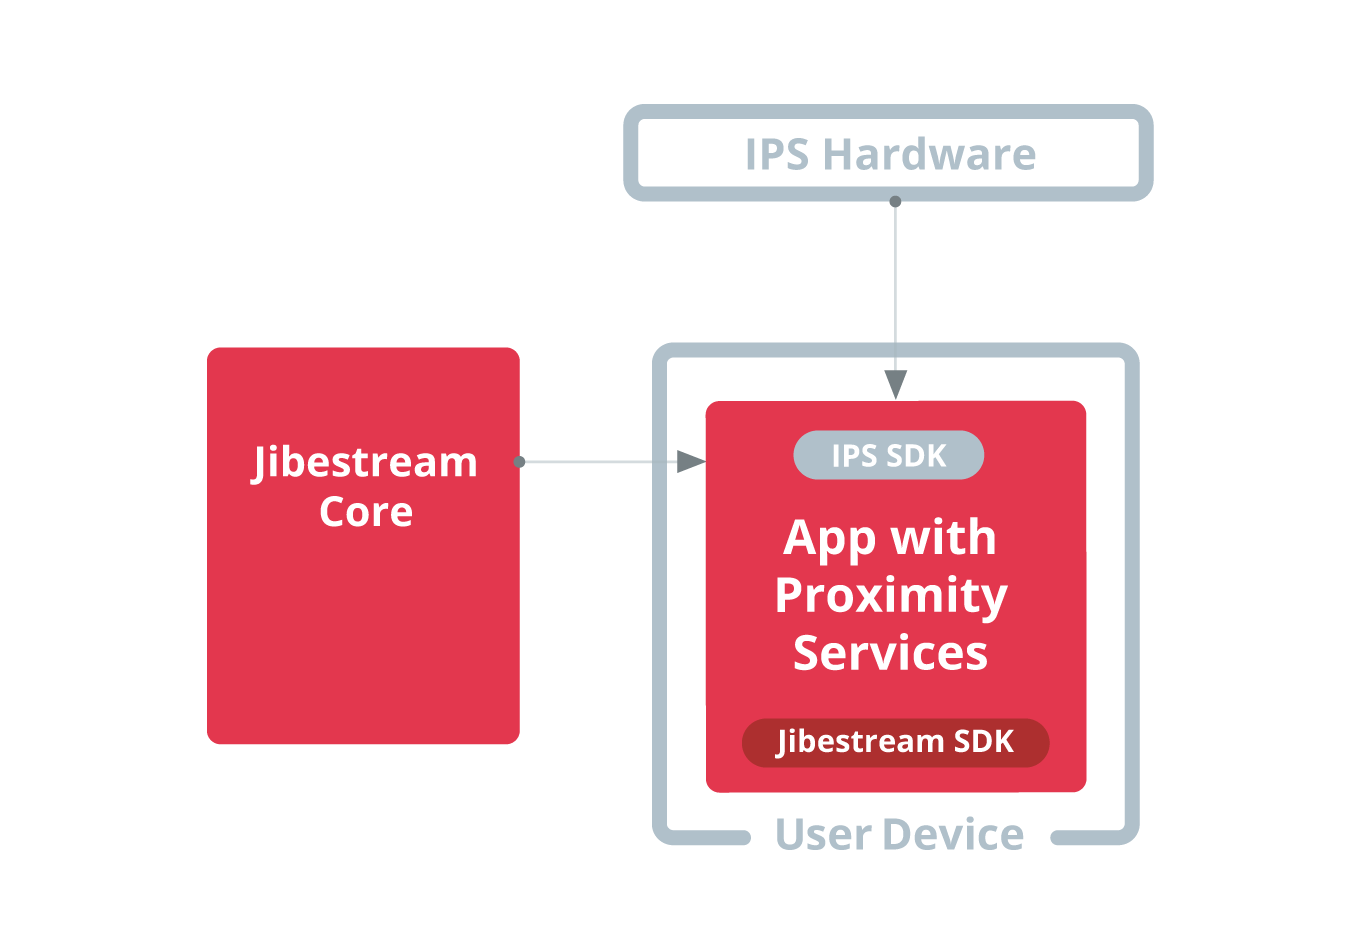 Jibestream Use Case - Proximity Messaging & Services